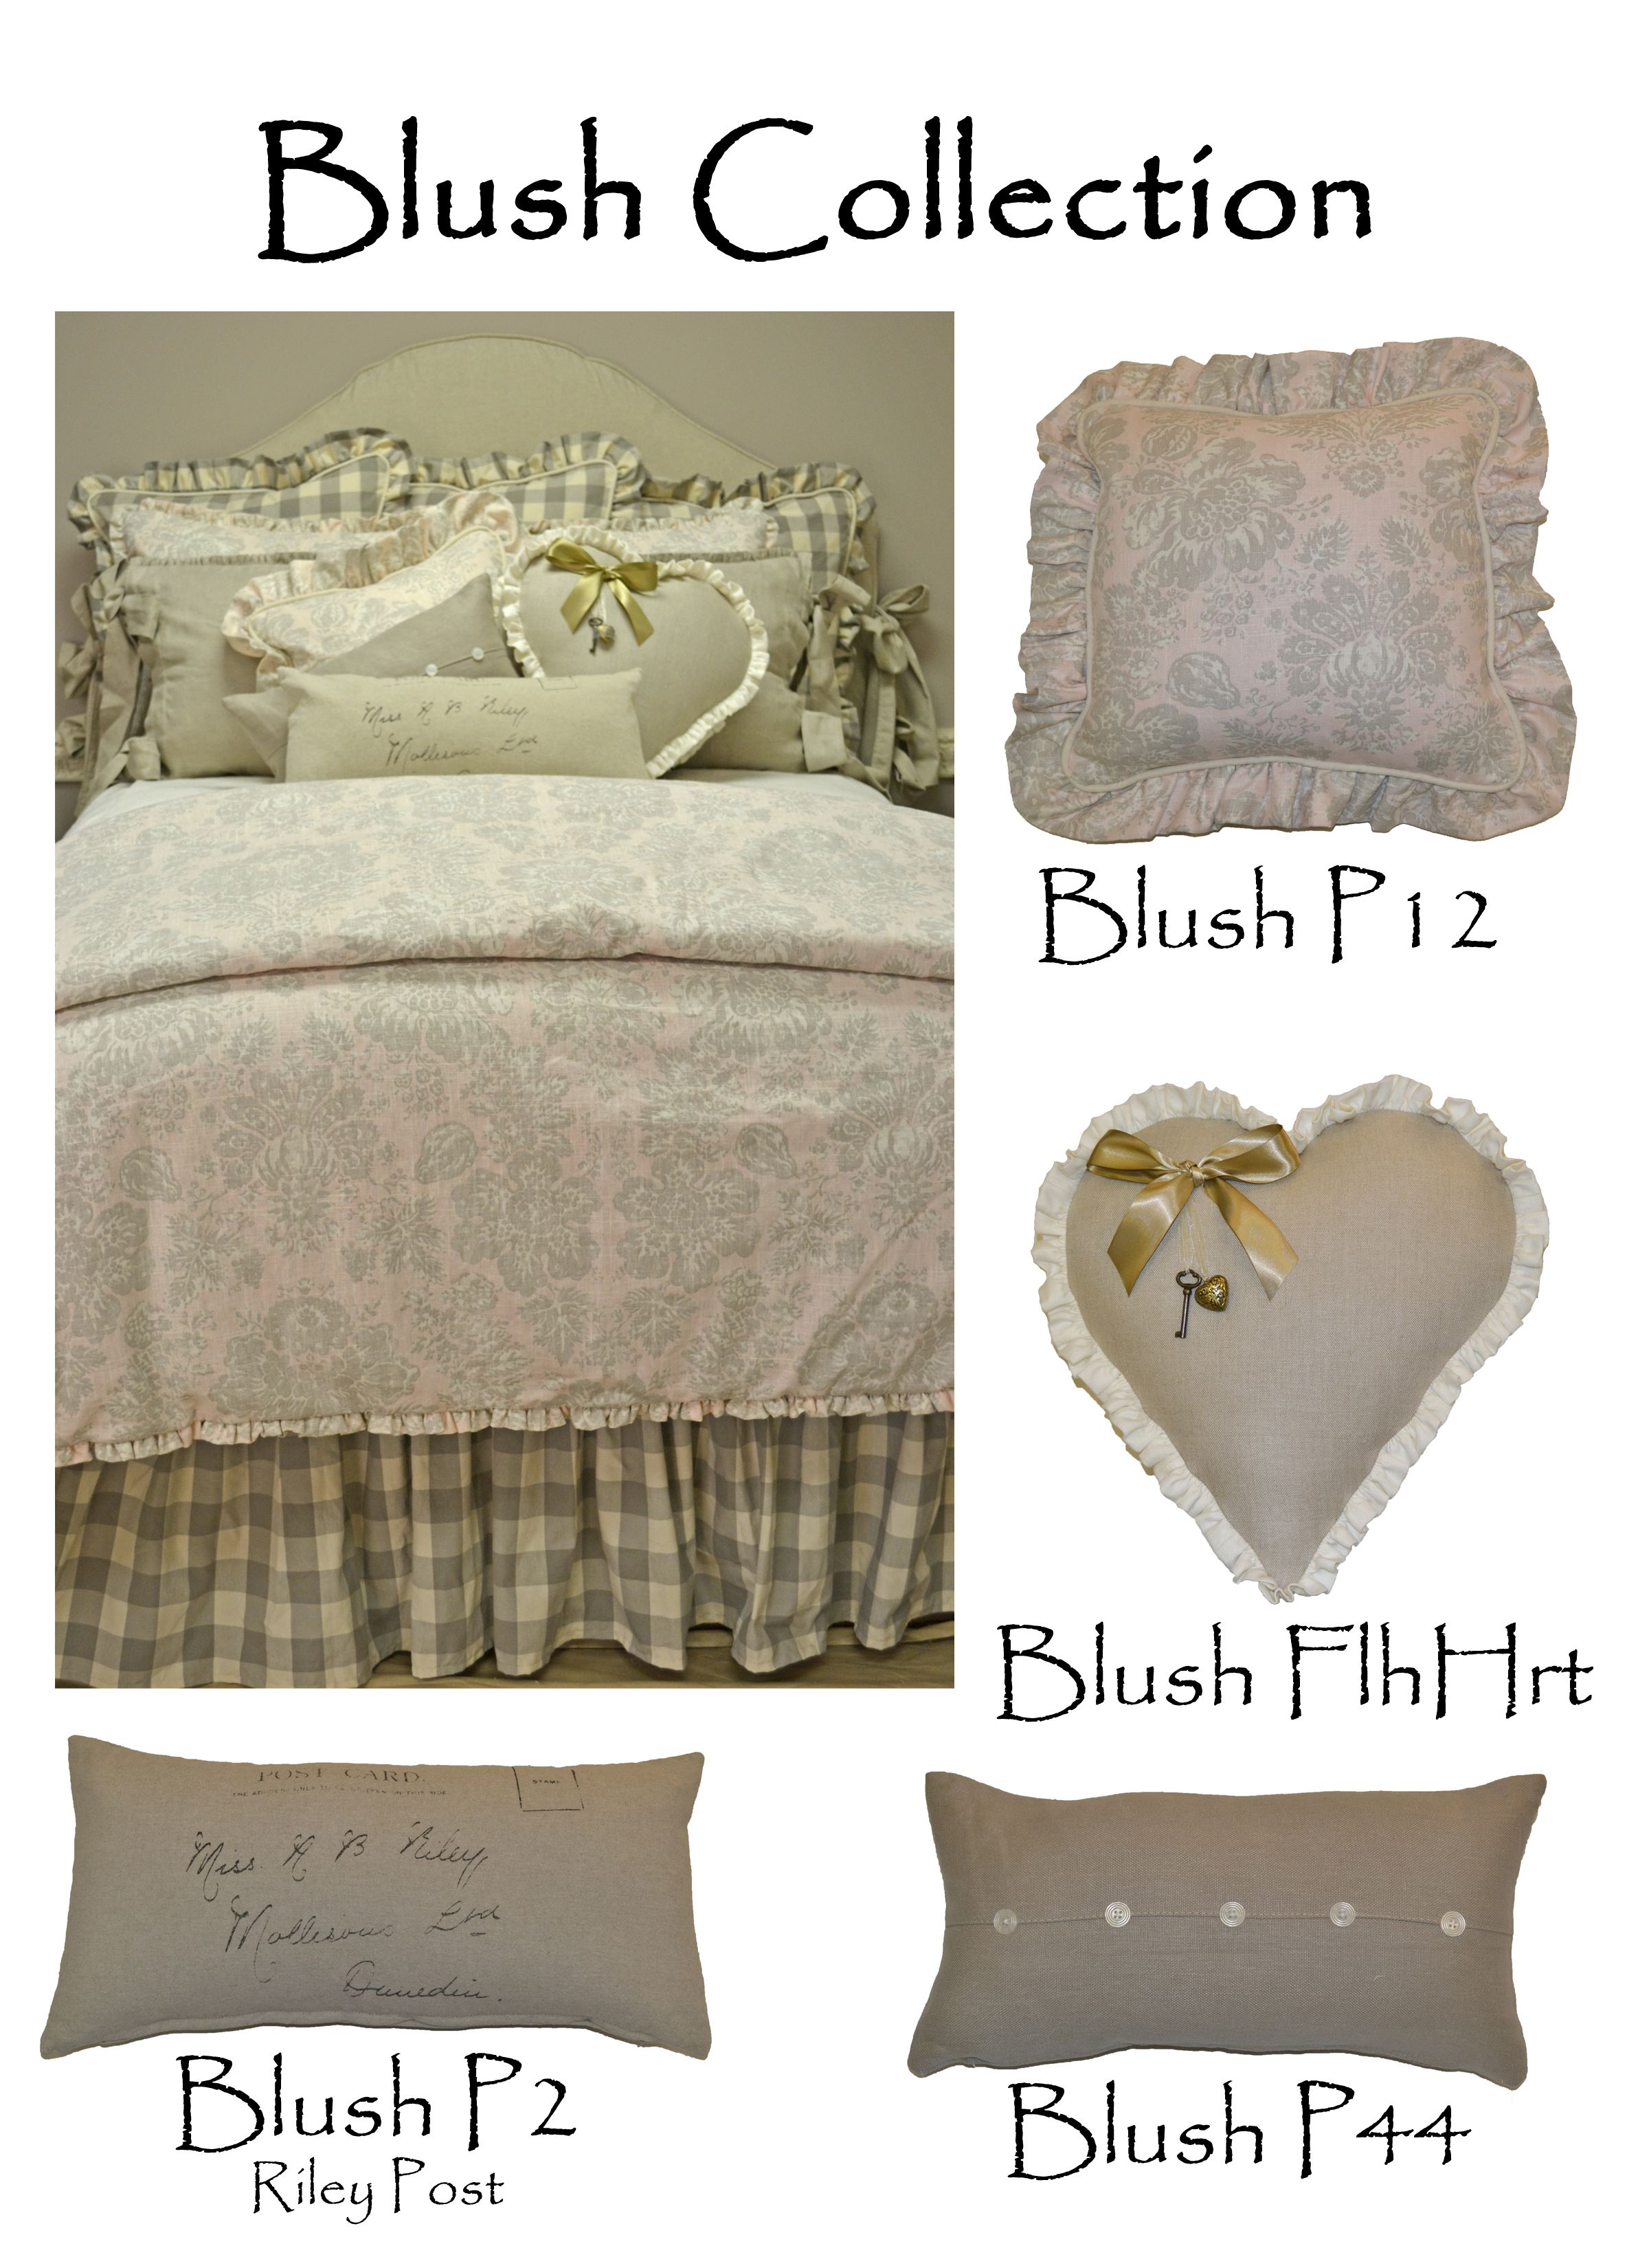 2013 Blush Collection 2013 French Laundry Home Bedding